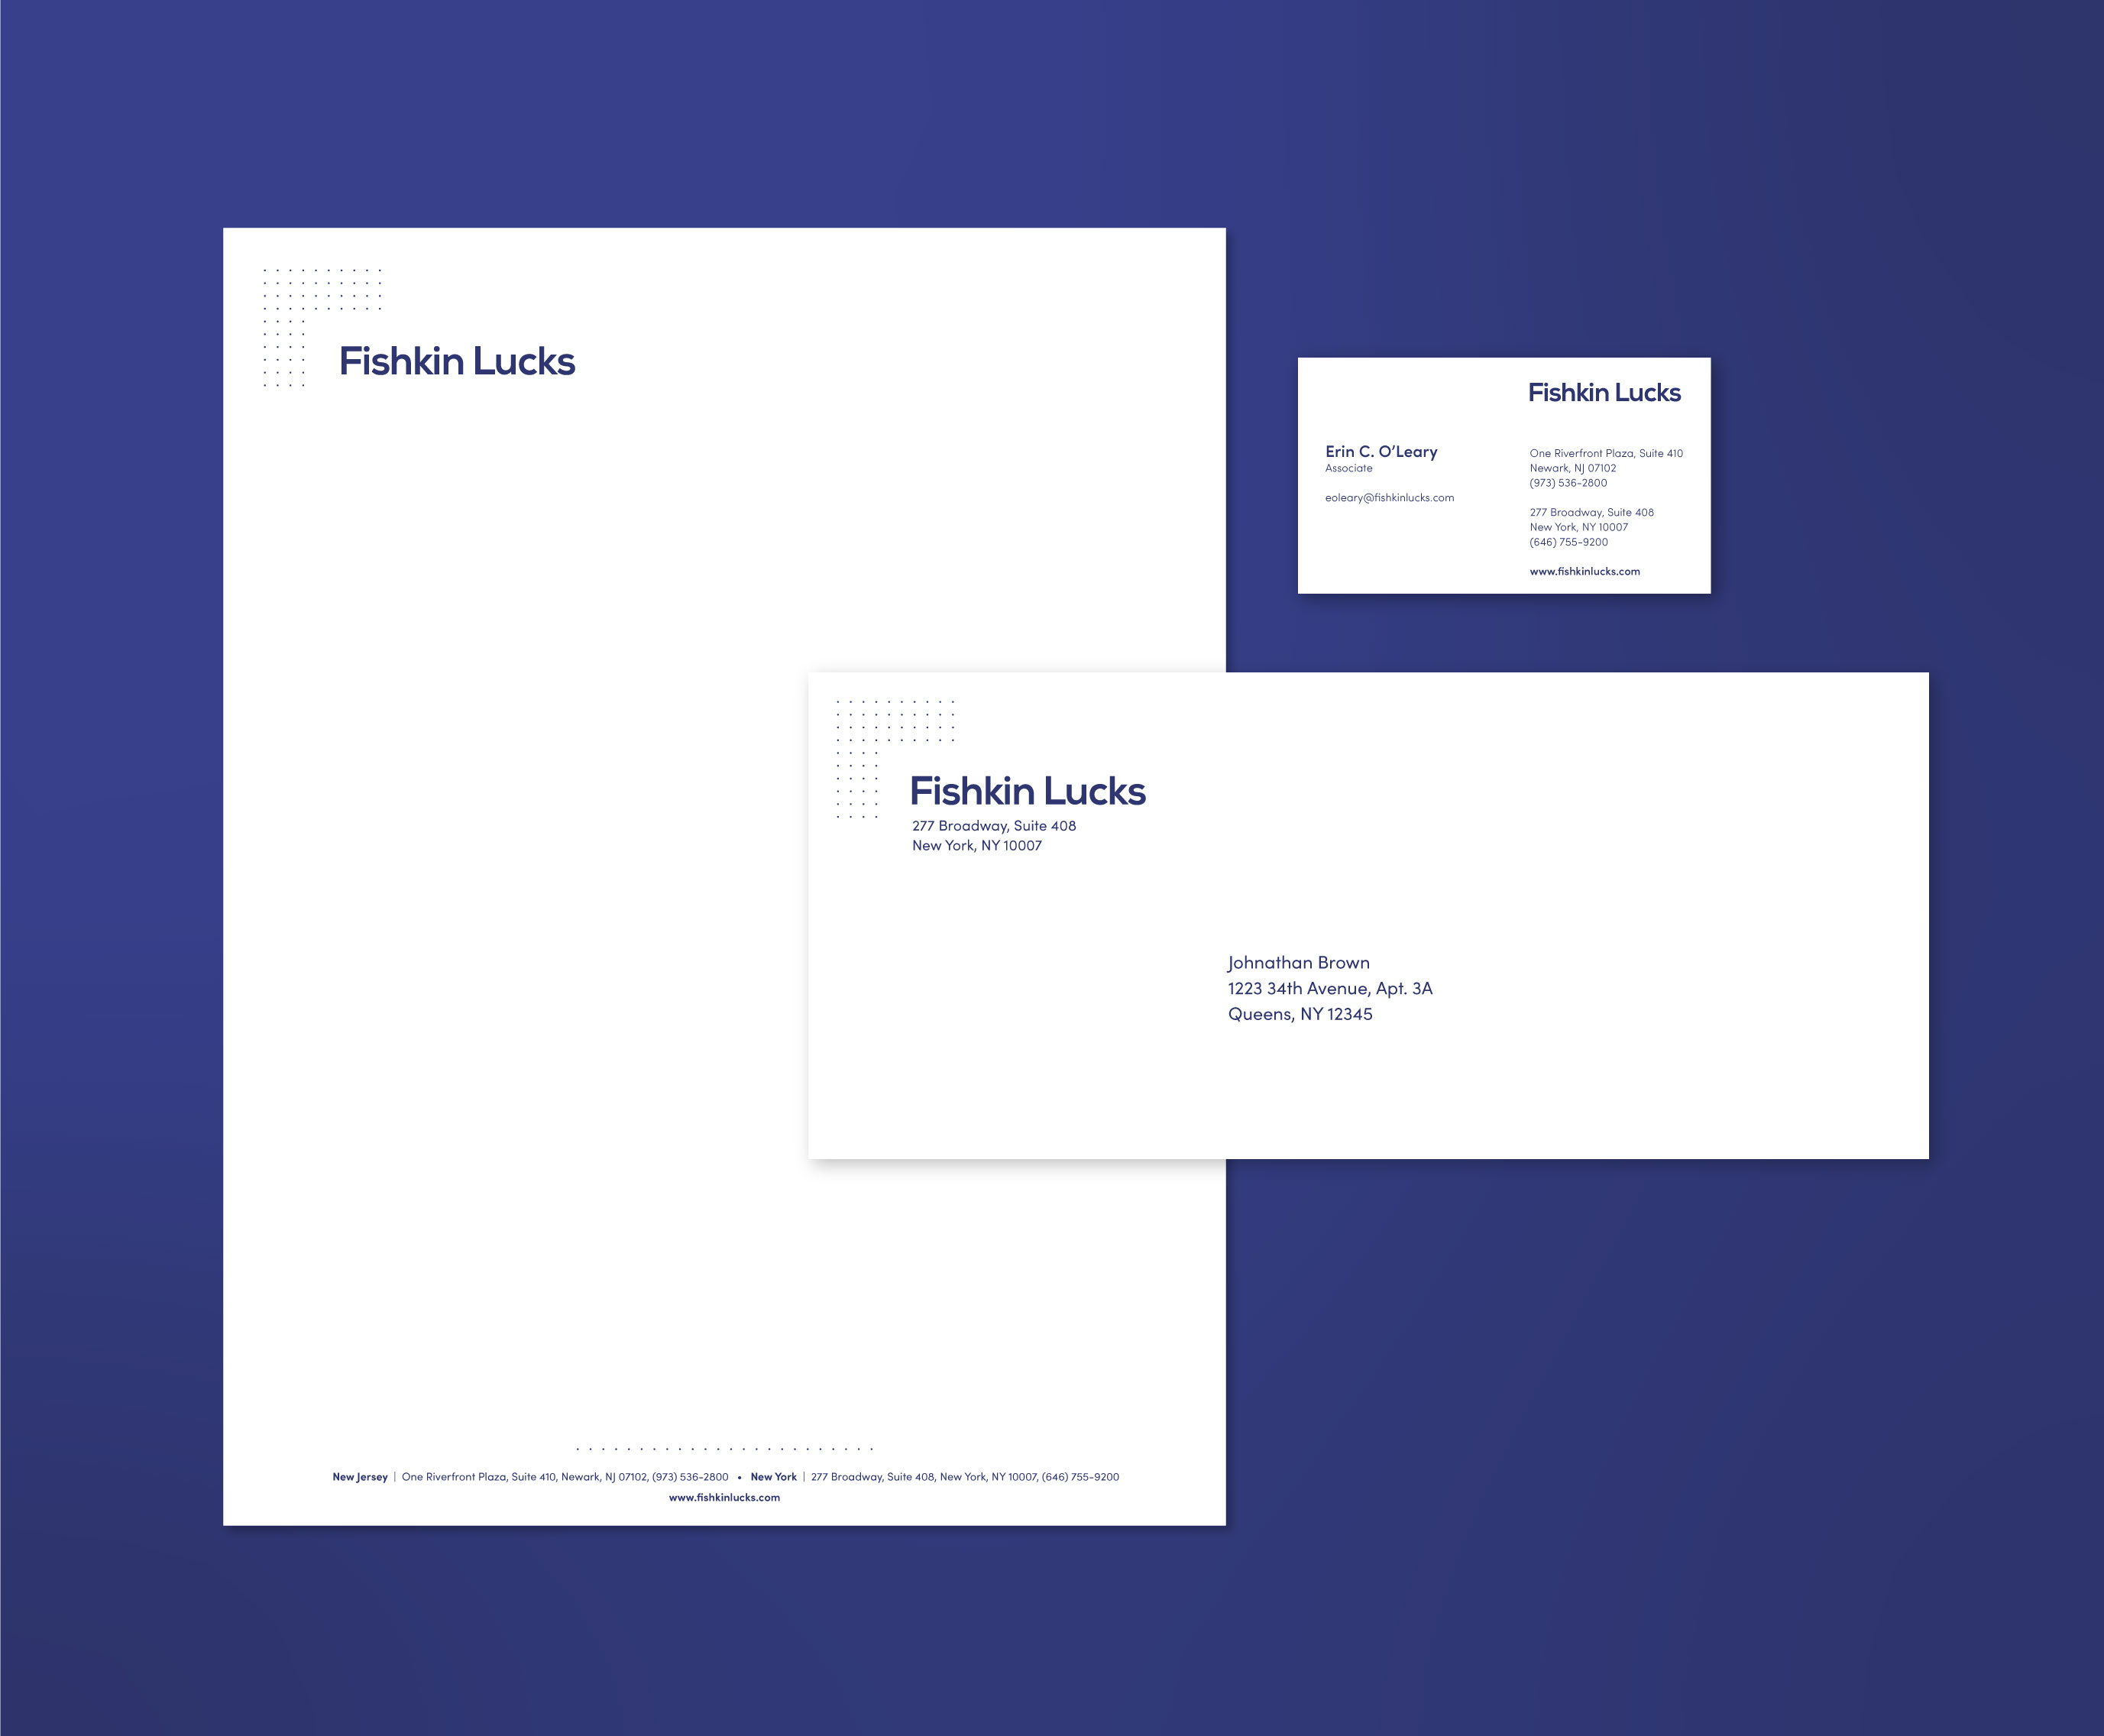 Fishkin Lucks - Letterhead Print Design